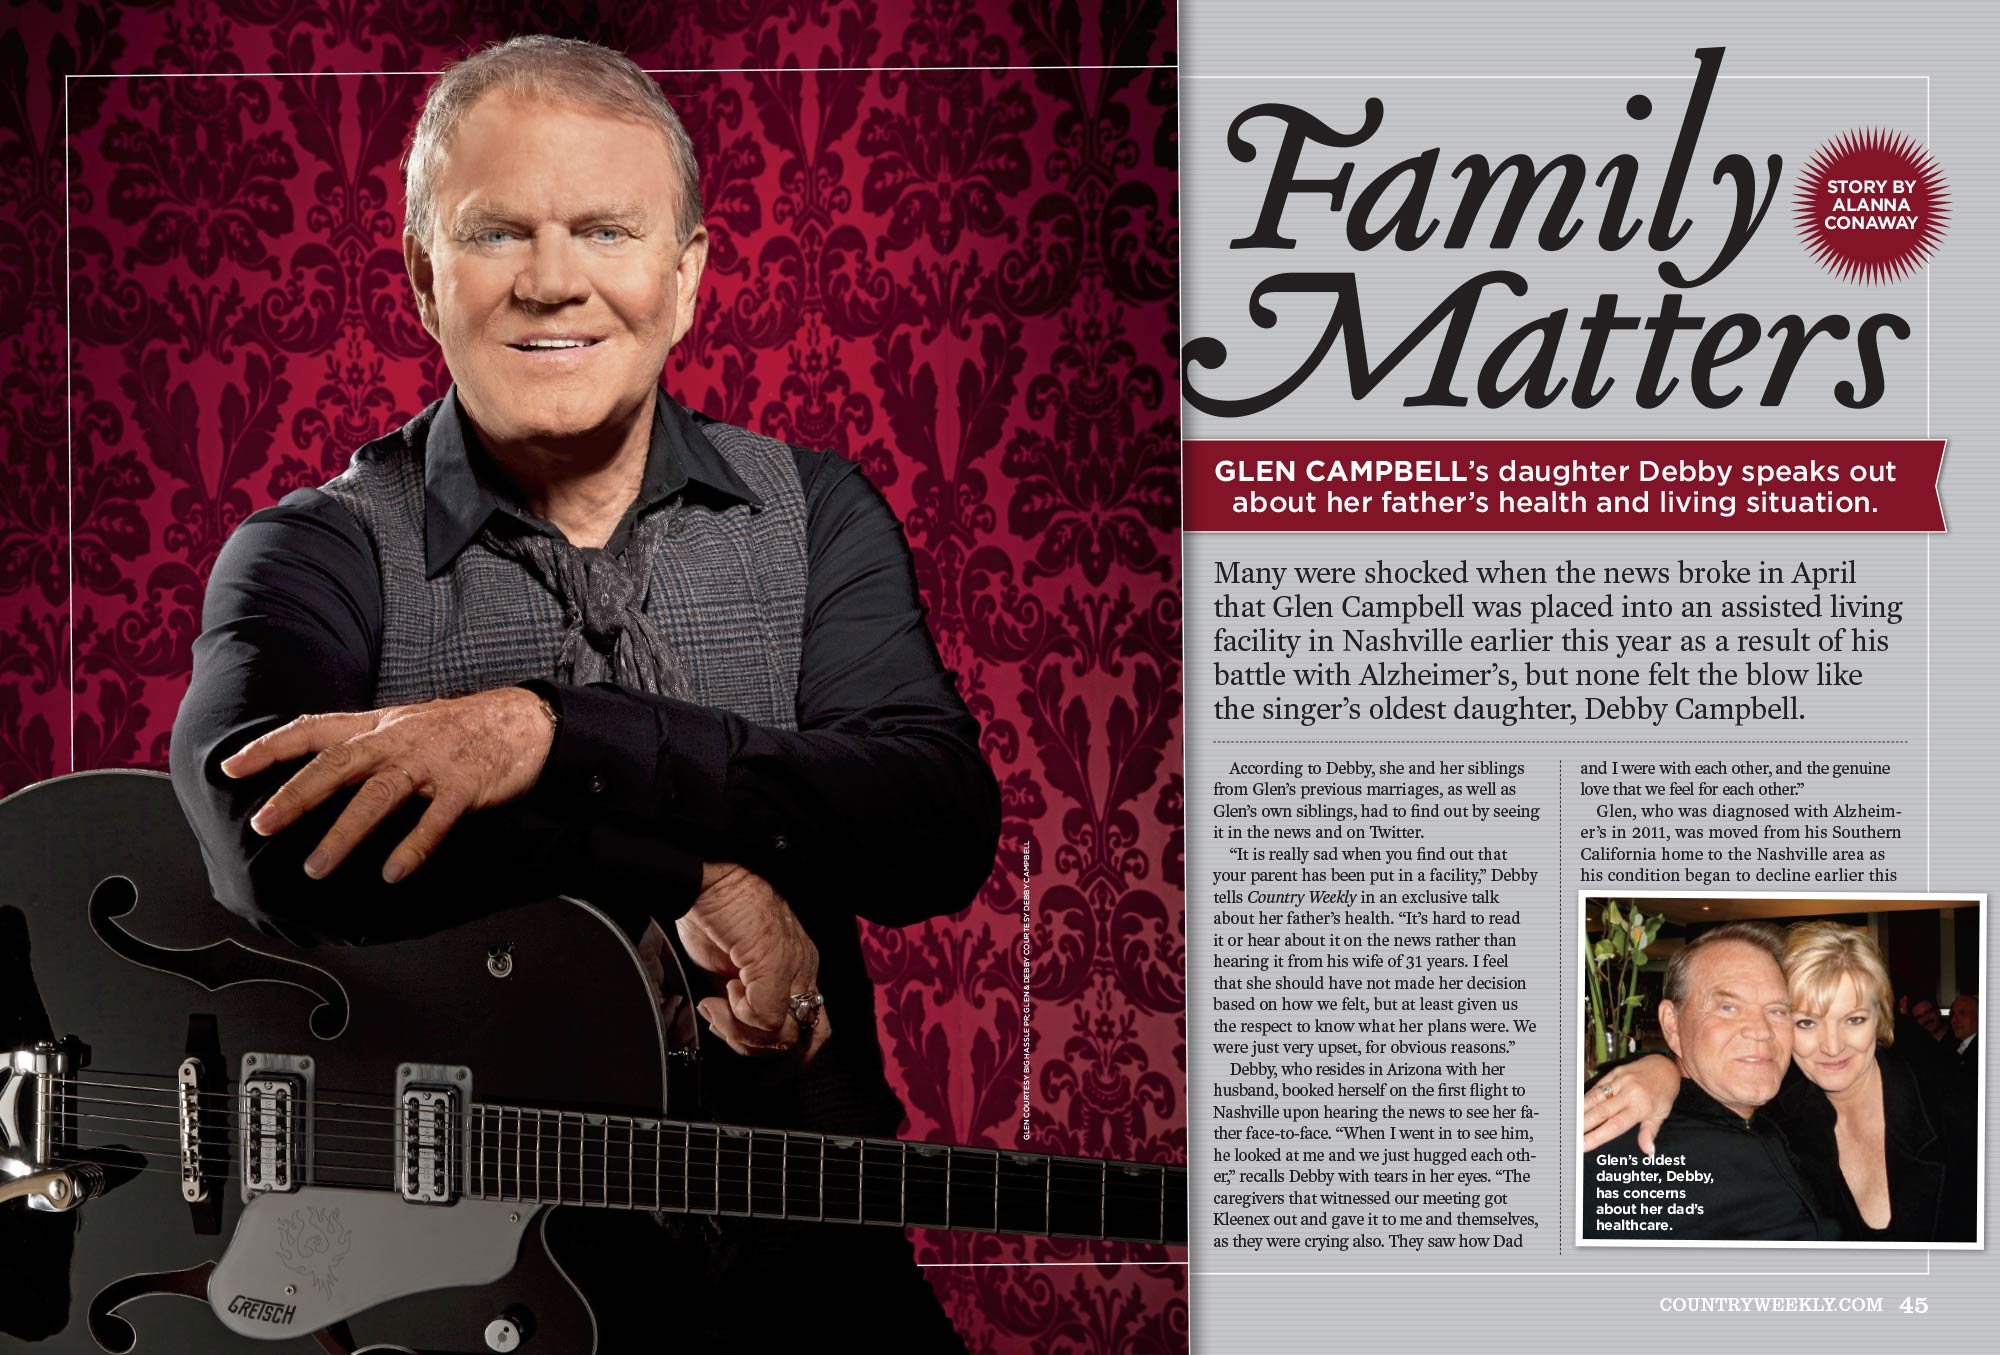 Glen Campbell's Daughter, Debby, Speaks Out About Her Father's Health and Living Situation